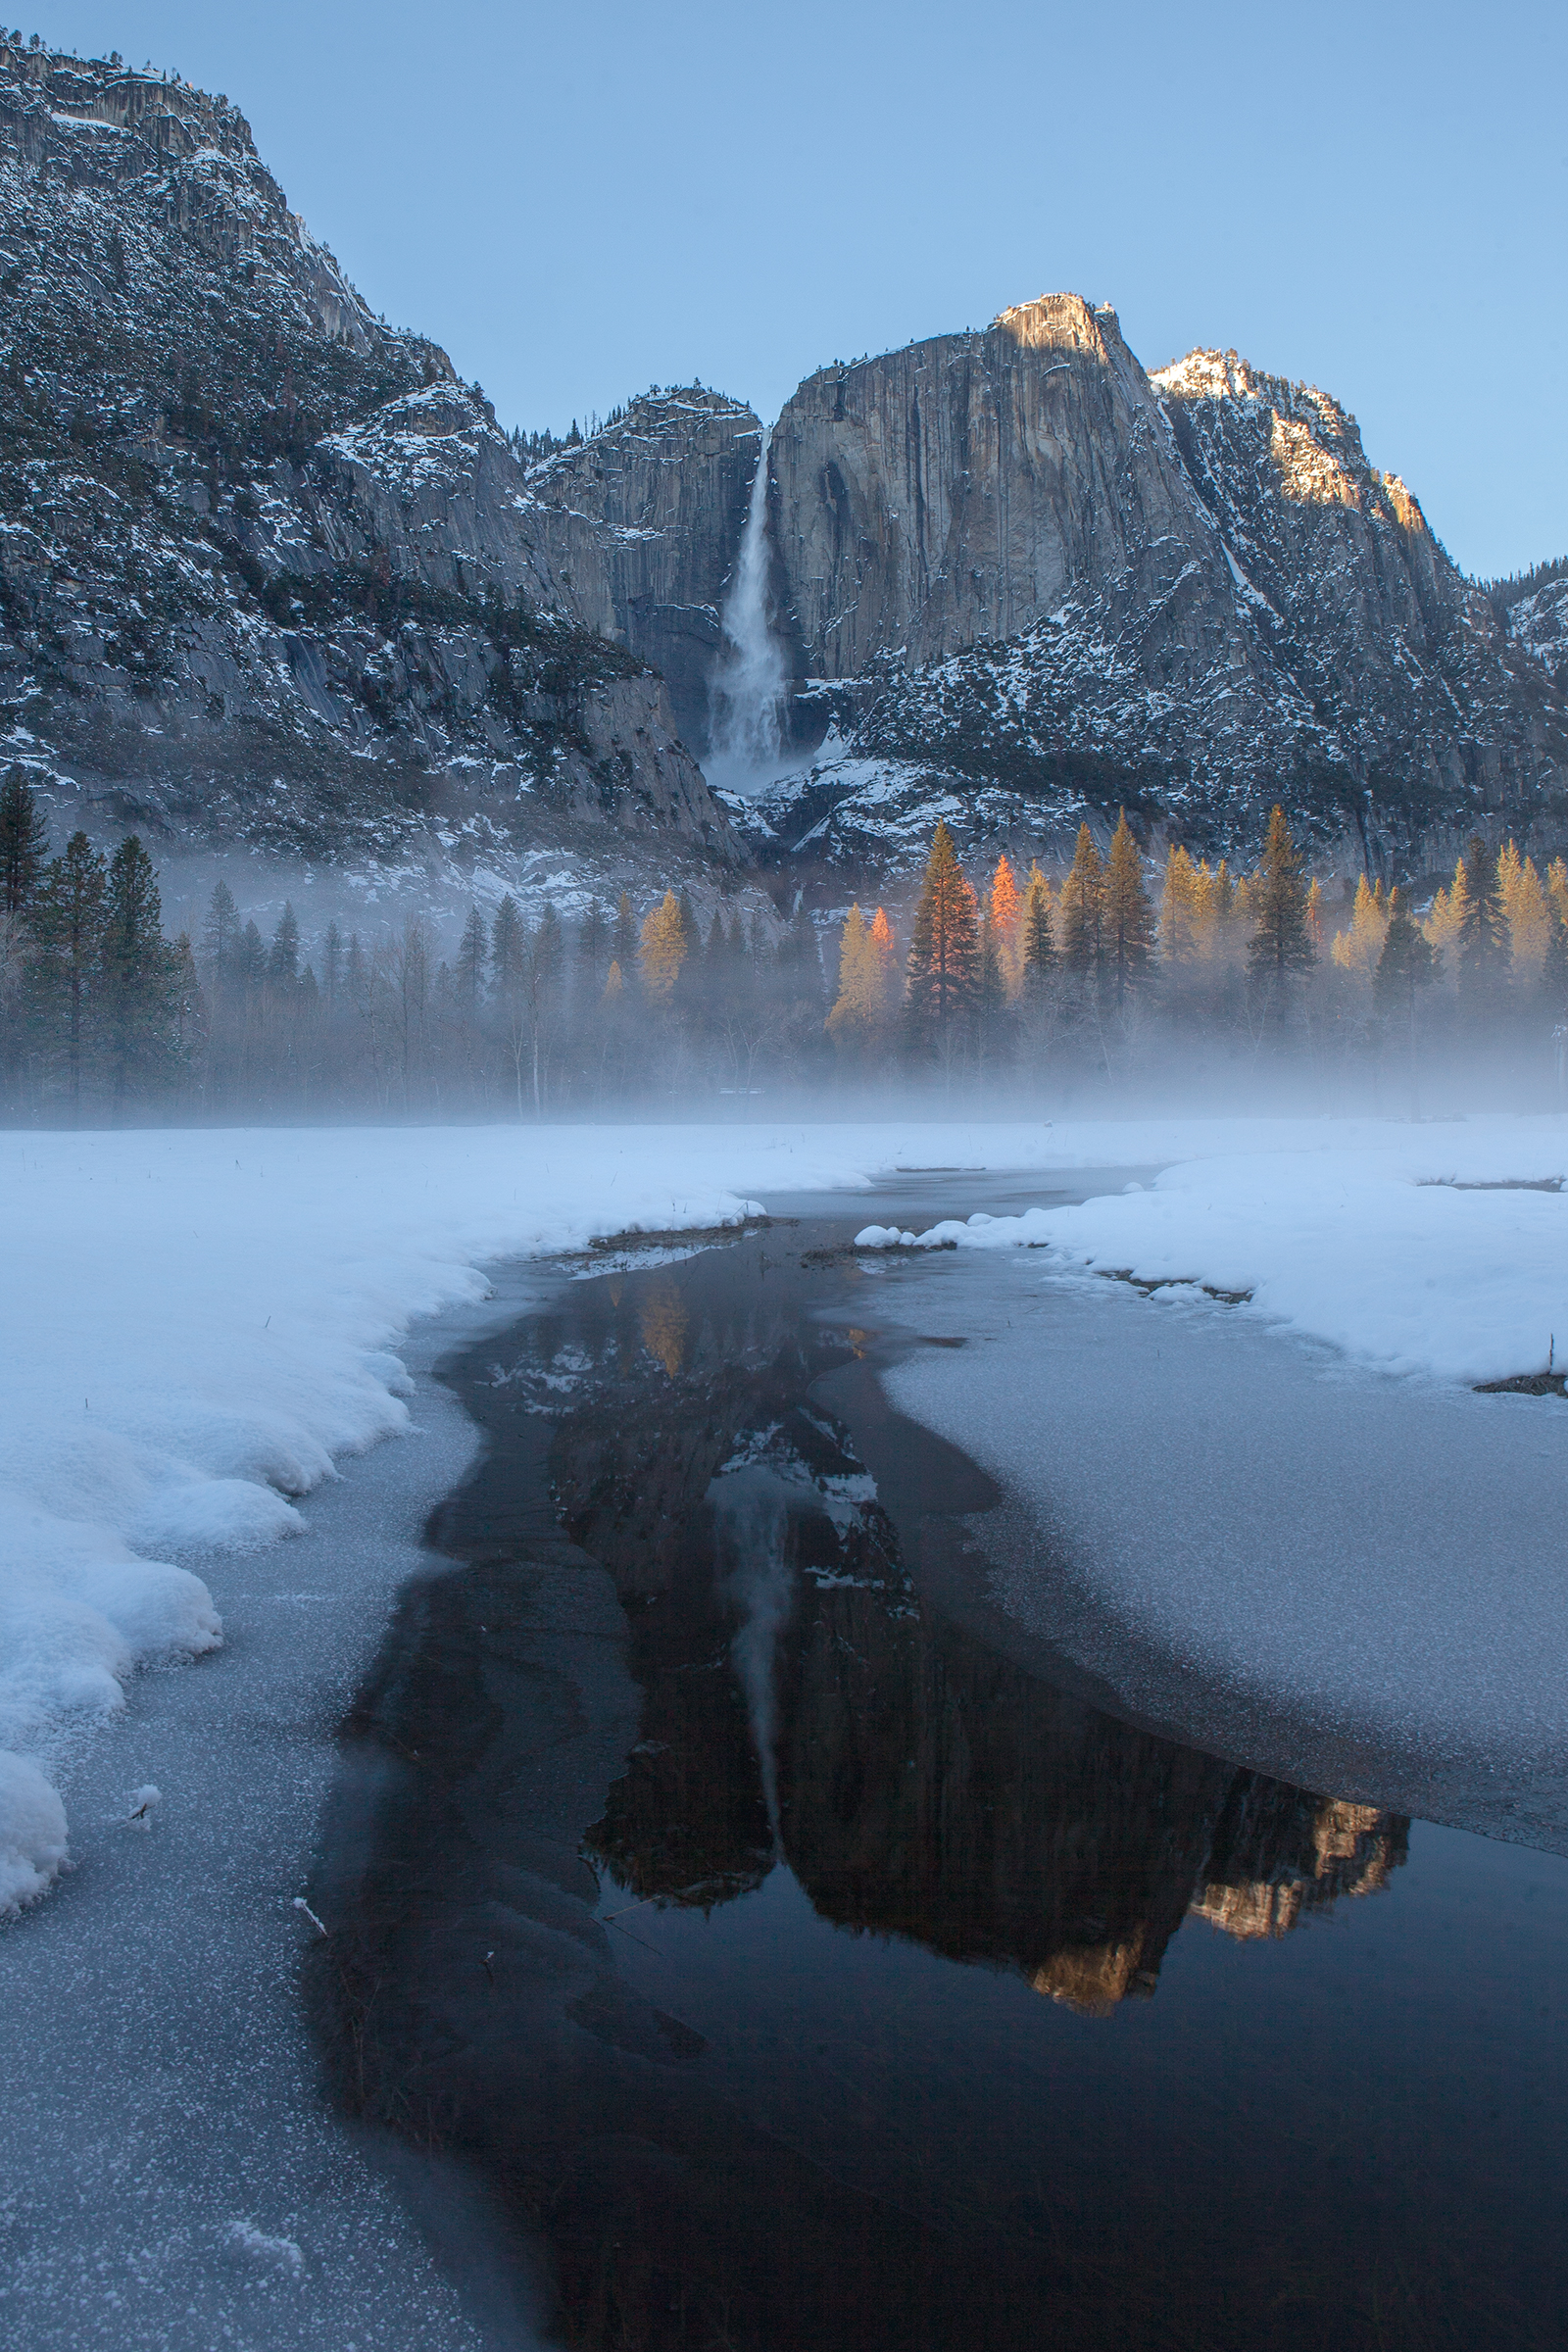 Frozen-reflection-Yosemite-Falls-at-sunset.jpg